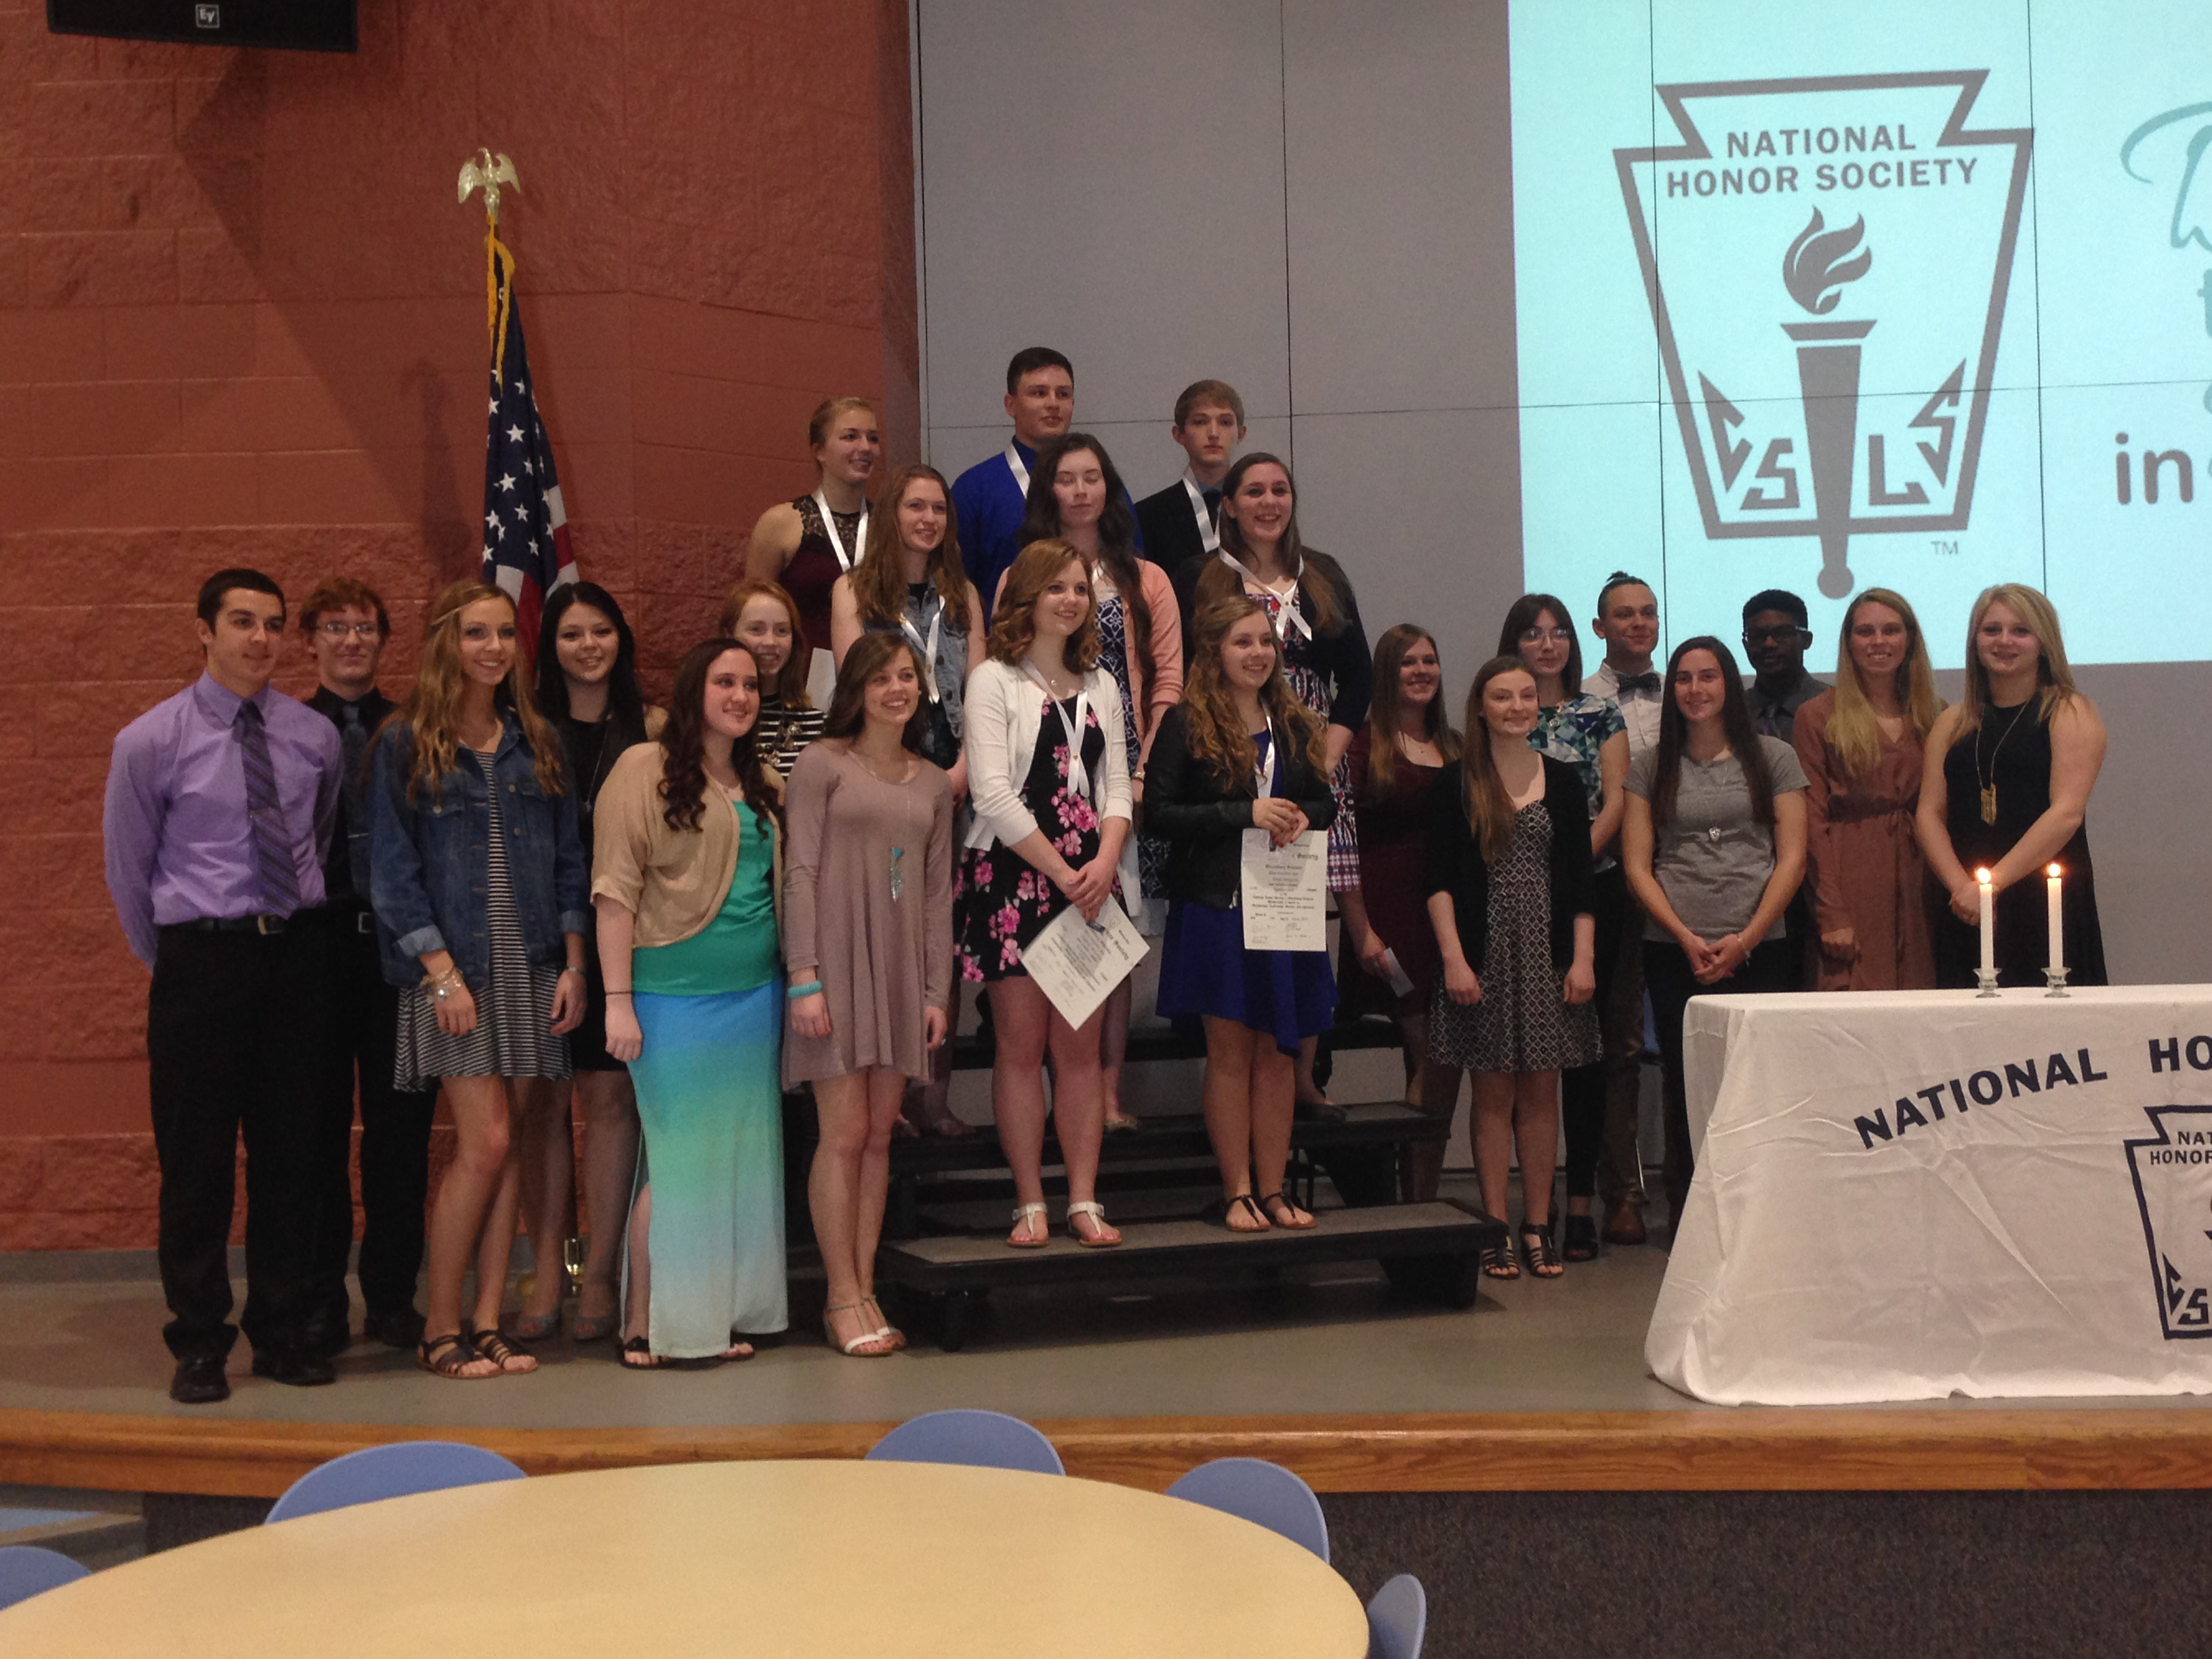 NHS Inducts New Members; Completes Over 810 Hours of Service